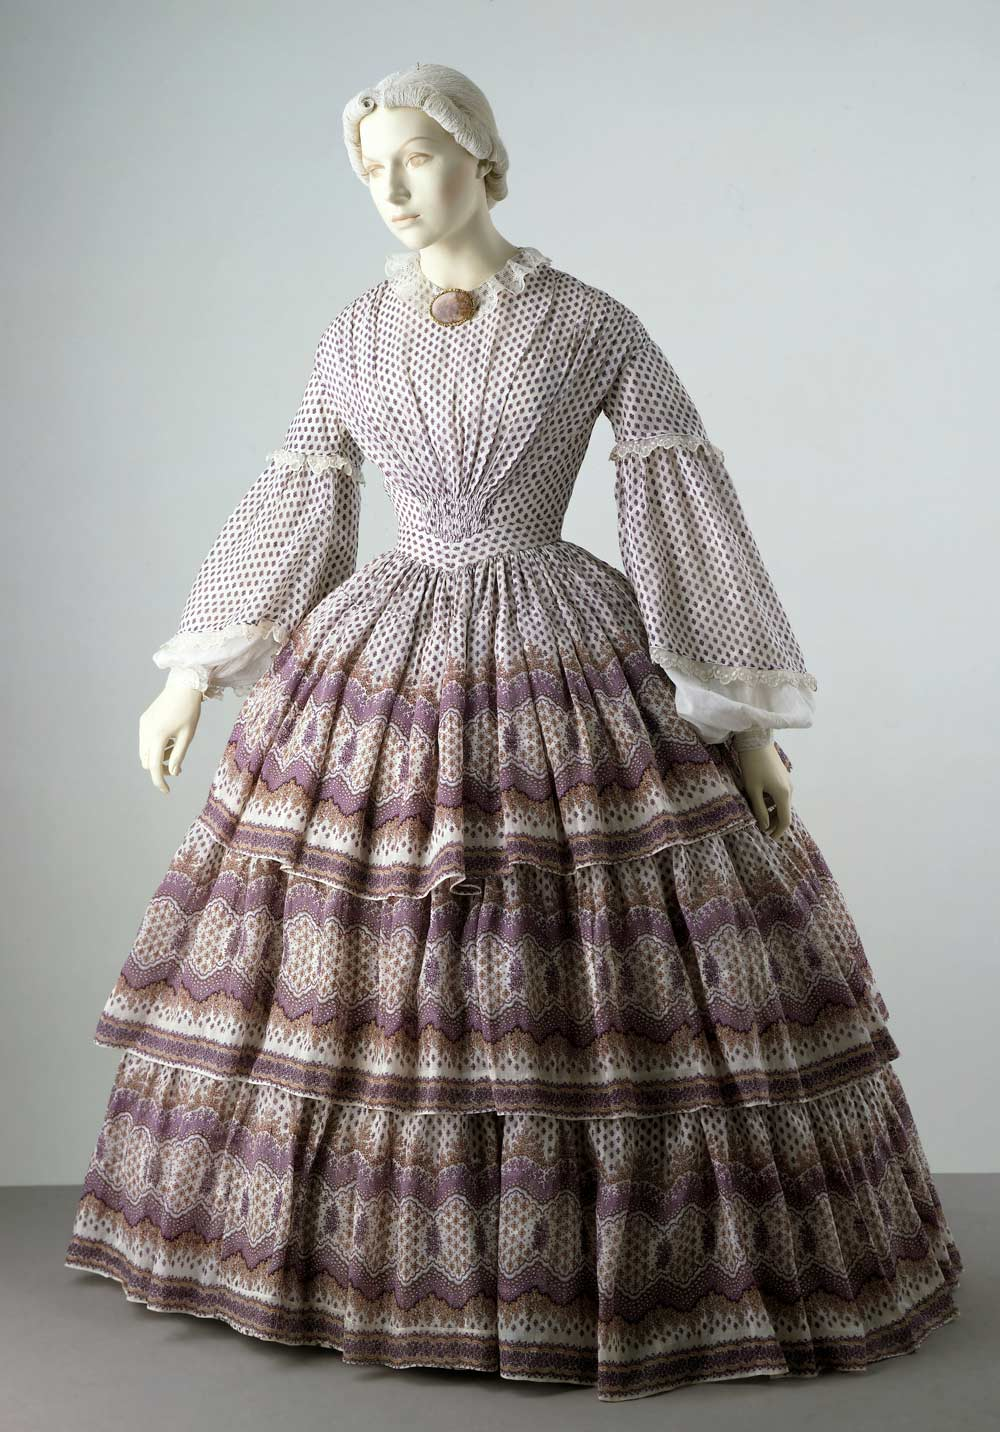 19th century fashion images